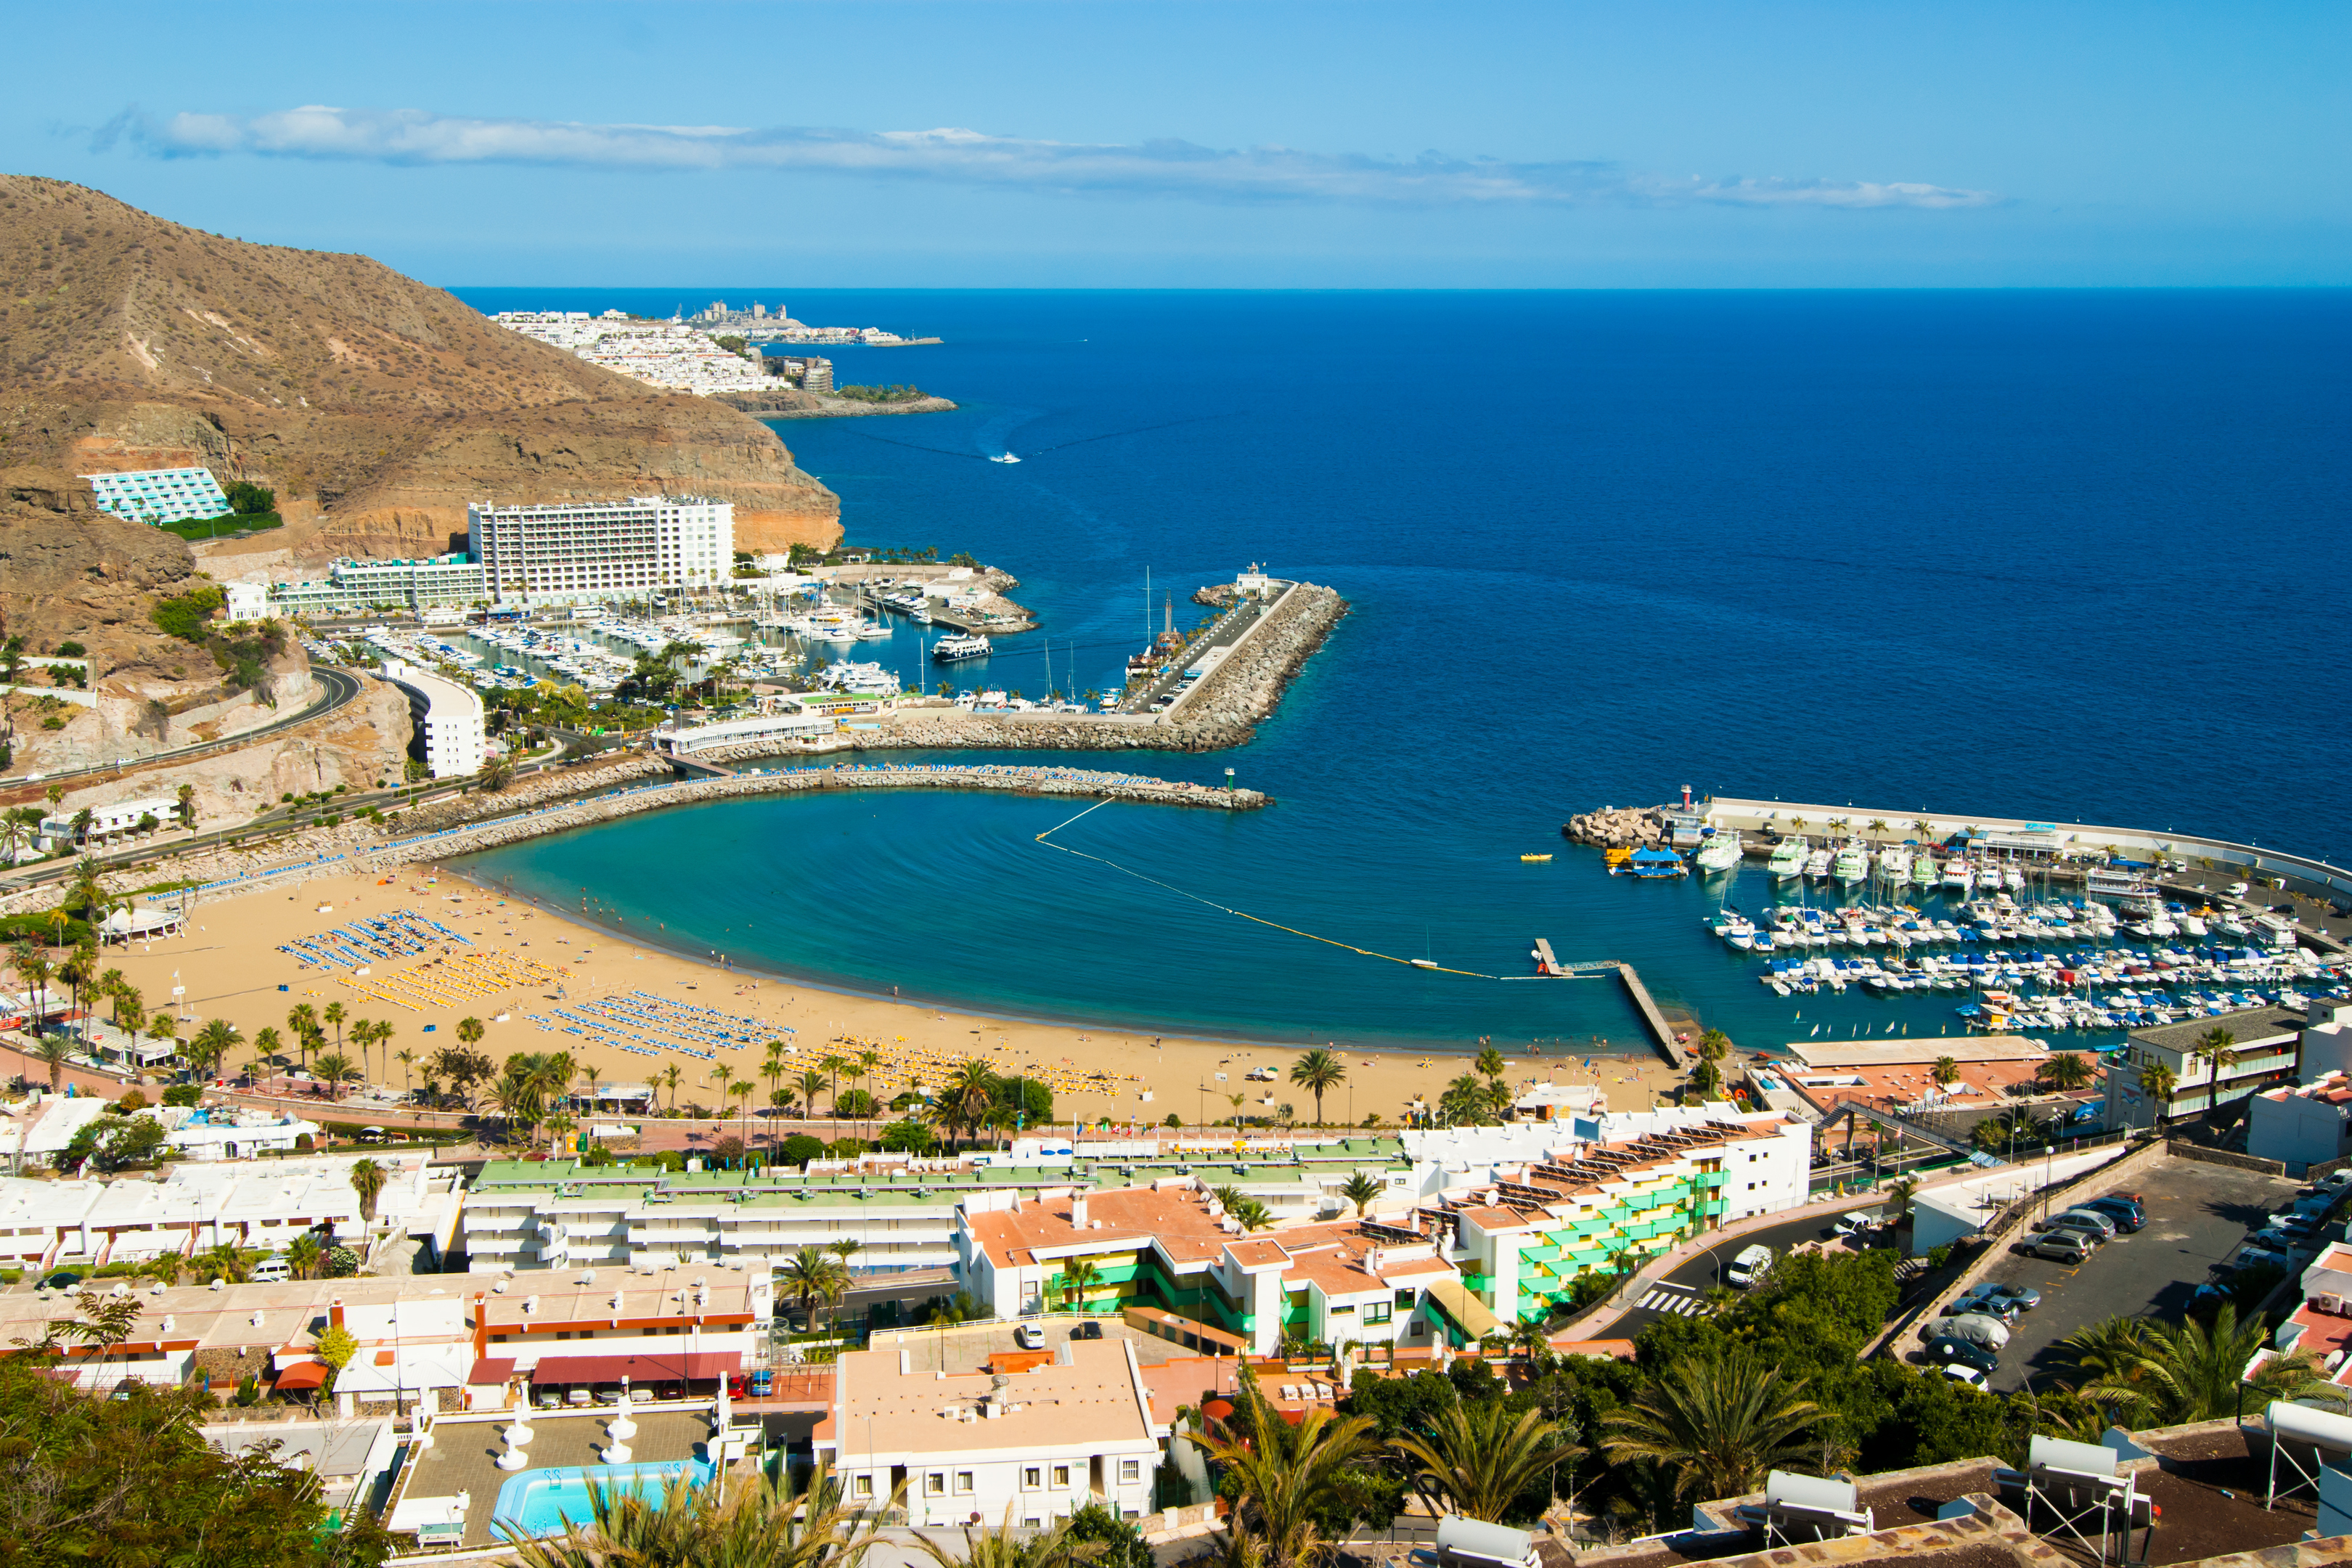 The picturesque Puerto Rico in Gran Canaria, Spain (iStock)